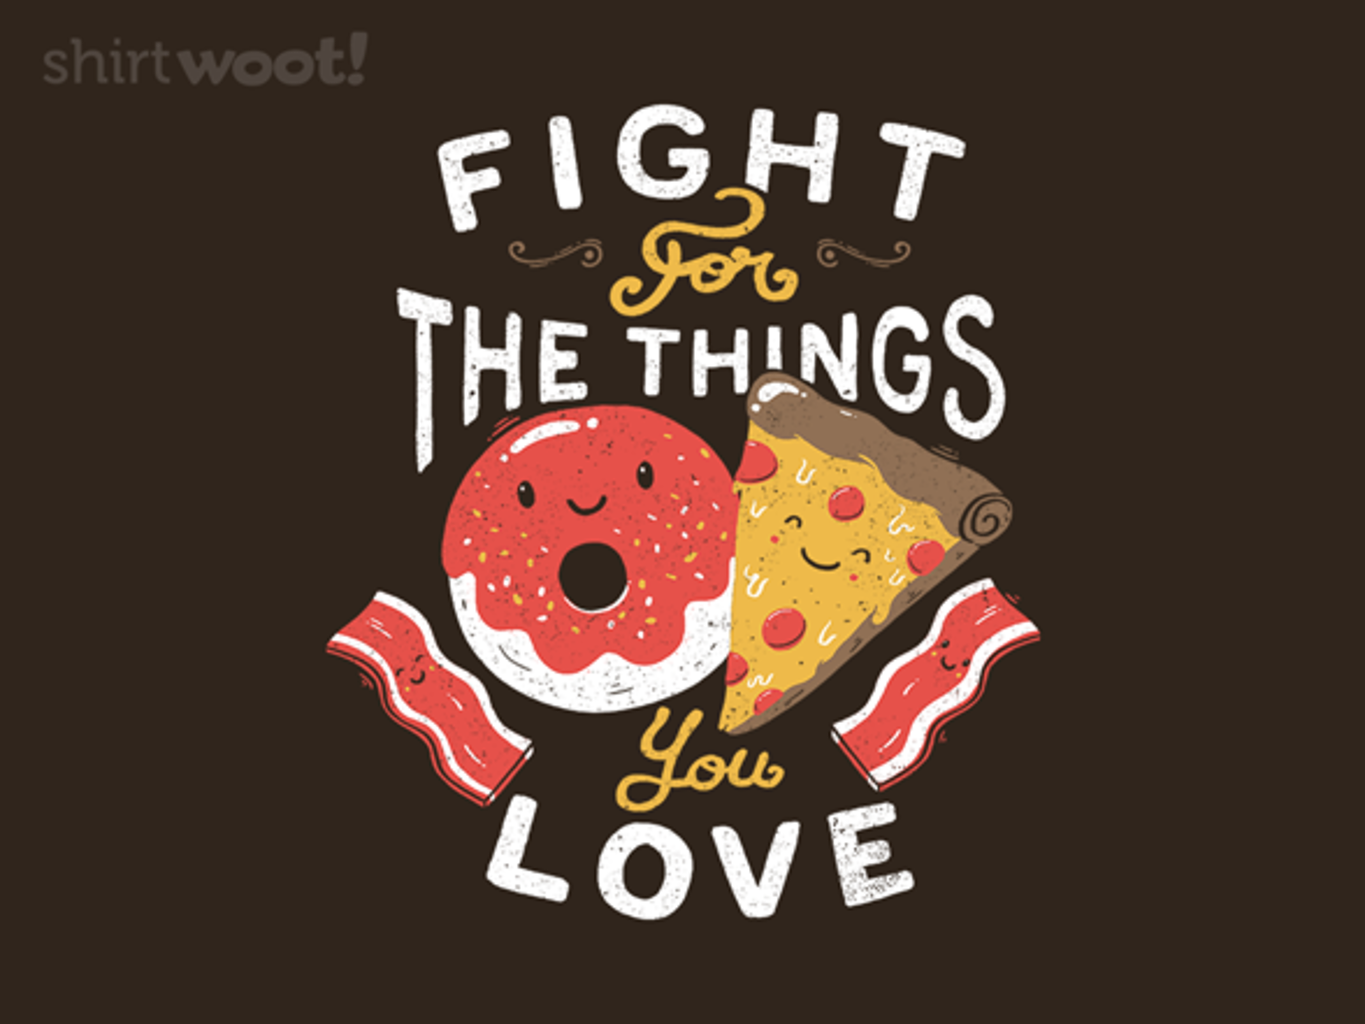 Woot!: Fight For What You Love